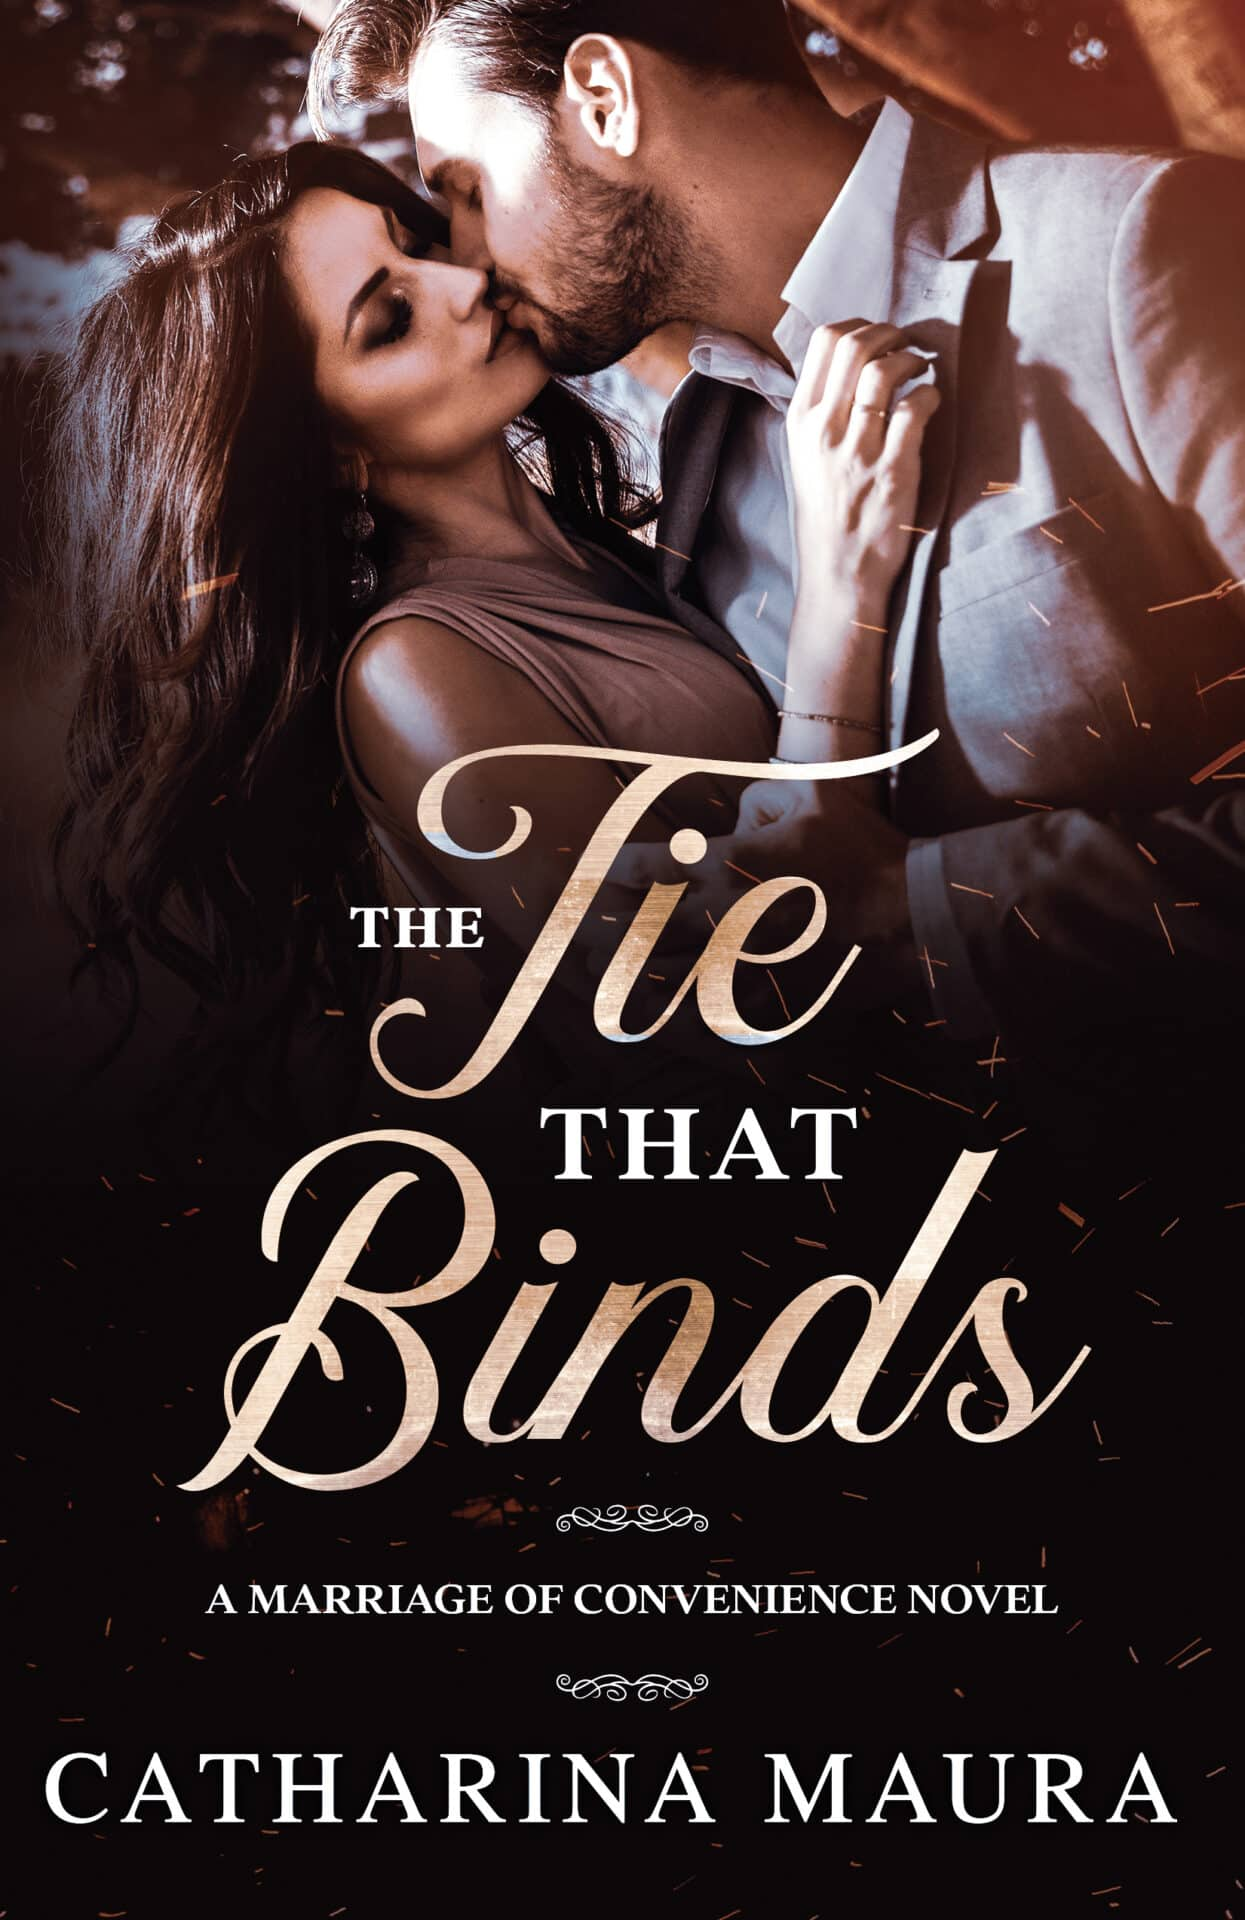 The Tie That Binds by Catharina Maura